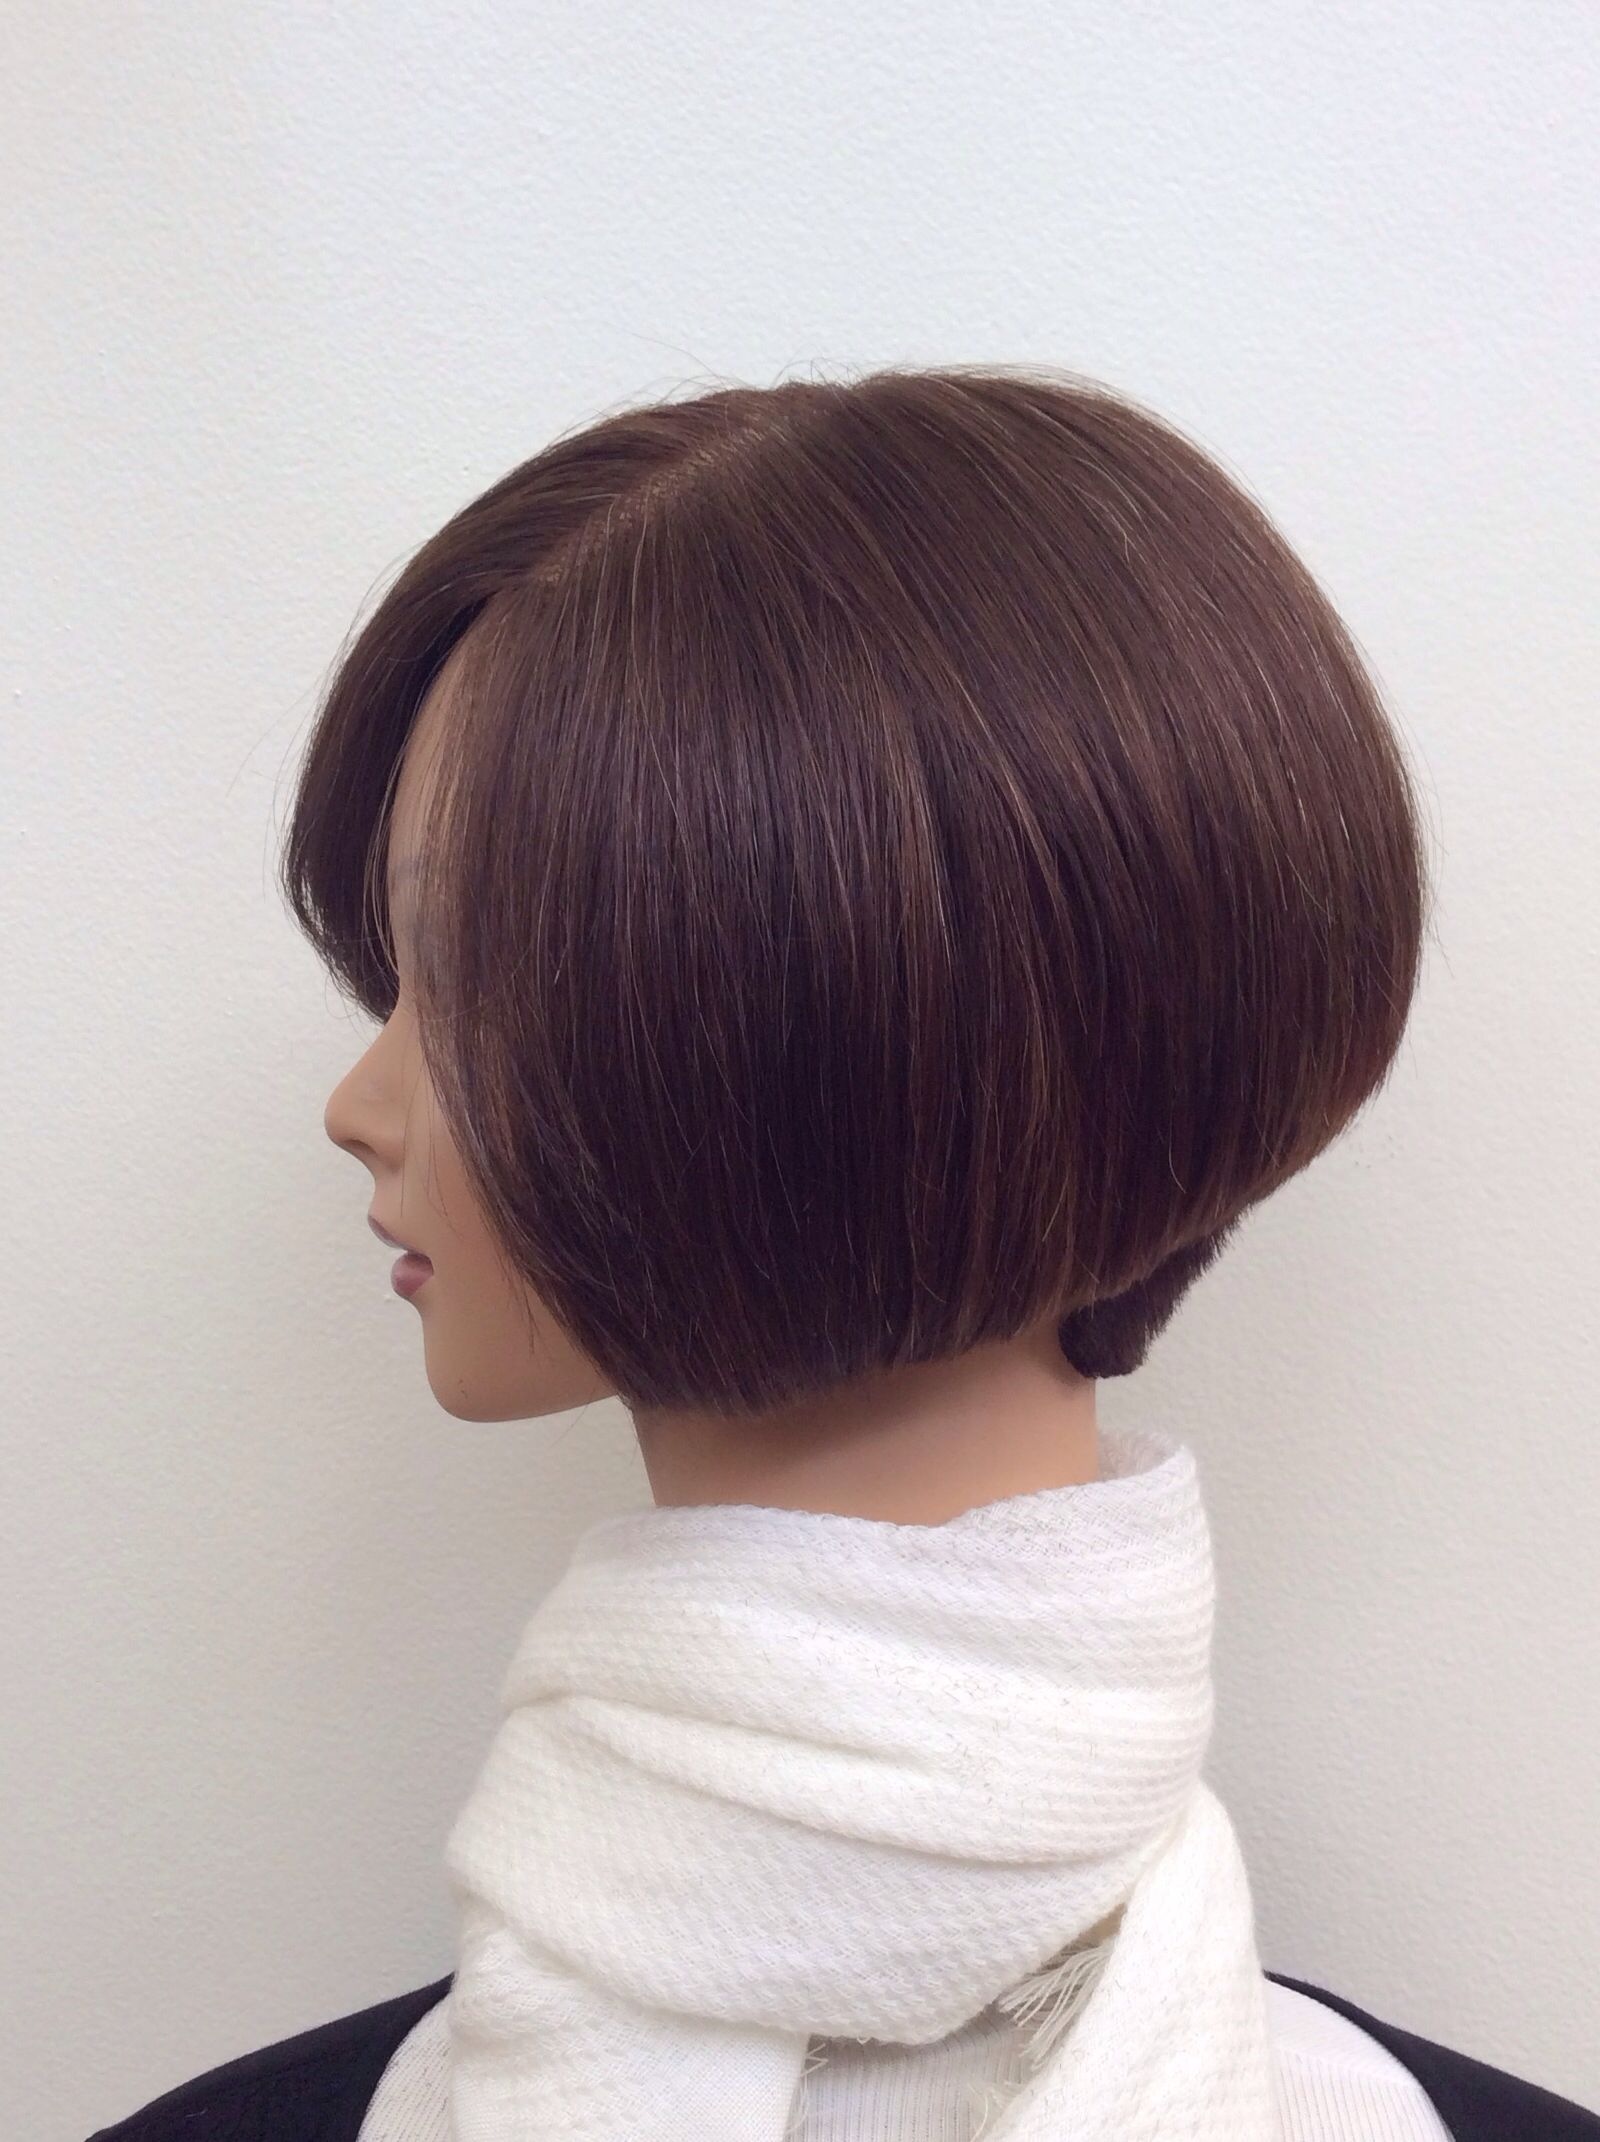 Bowl cut haircut men pavoulo  hdtv bob series  pinterest  bobs